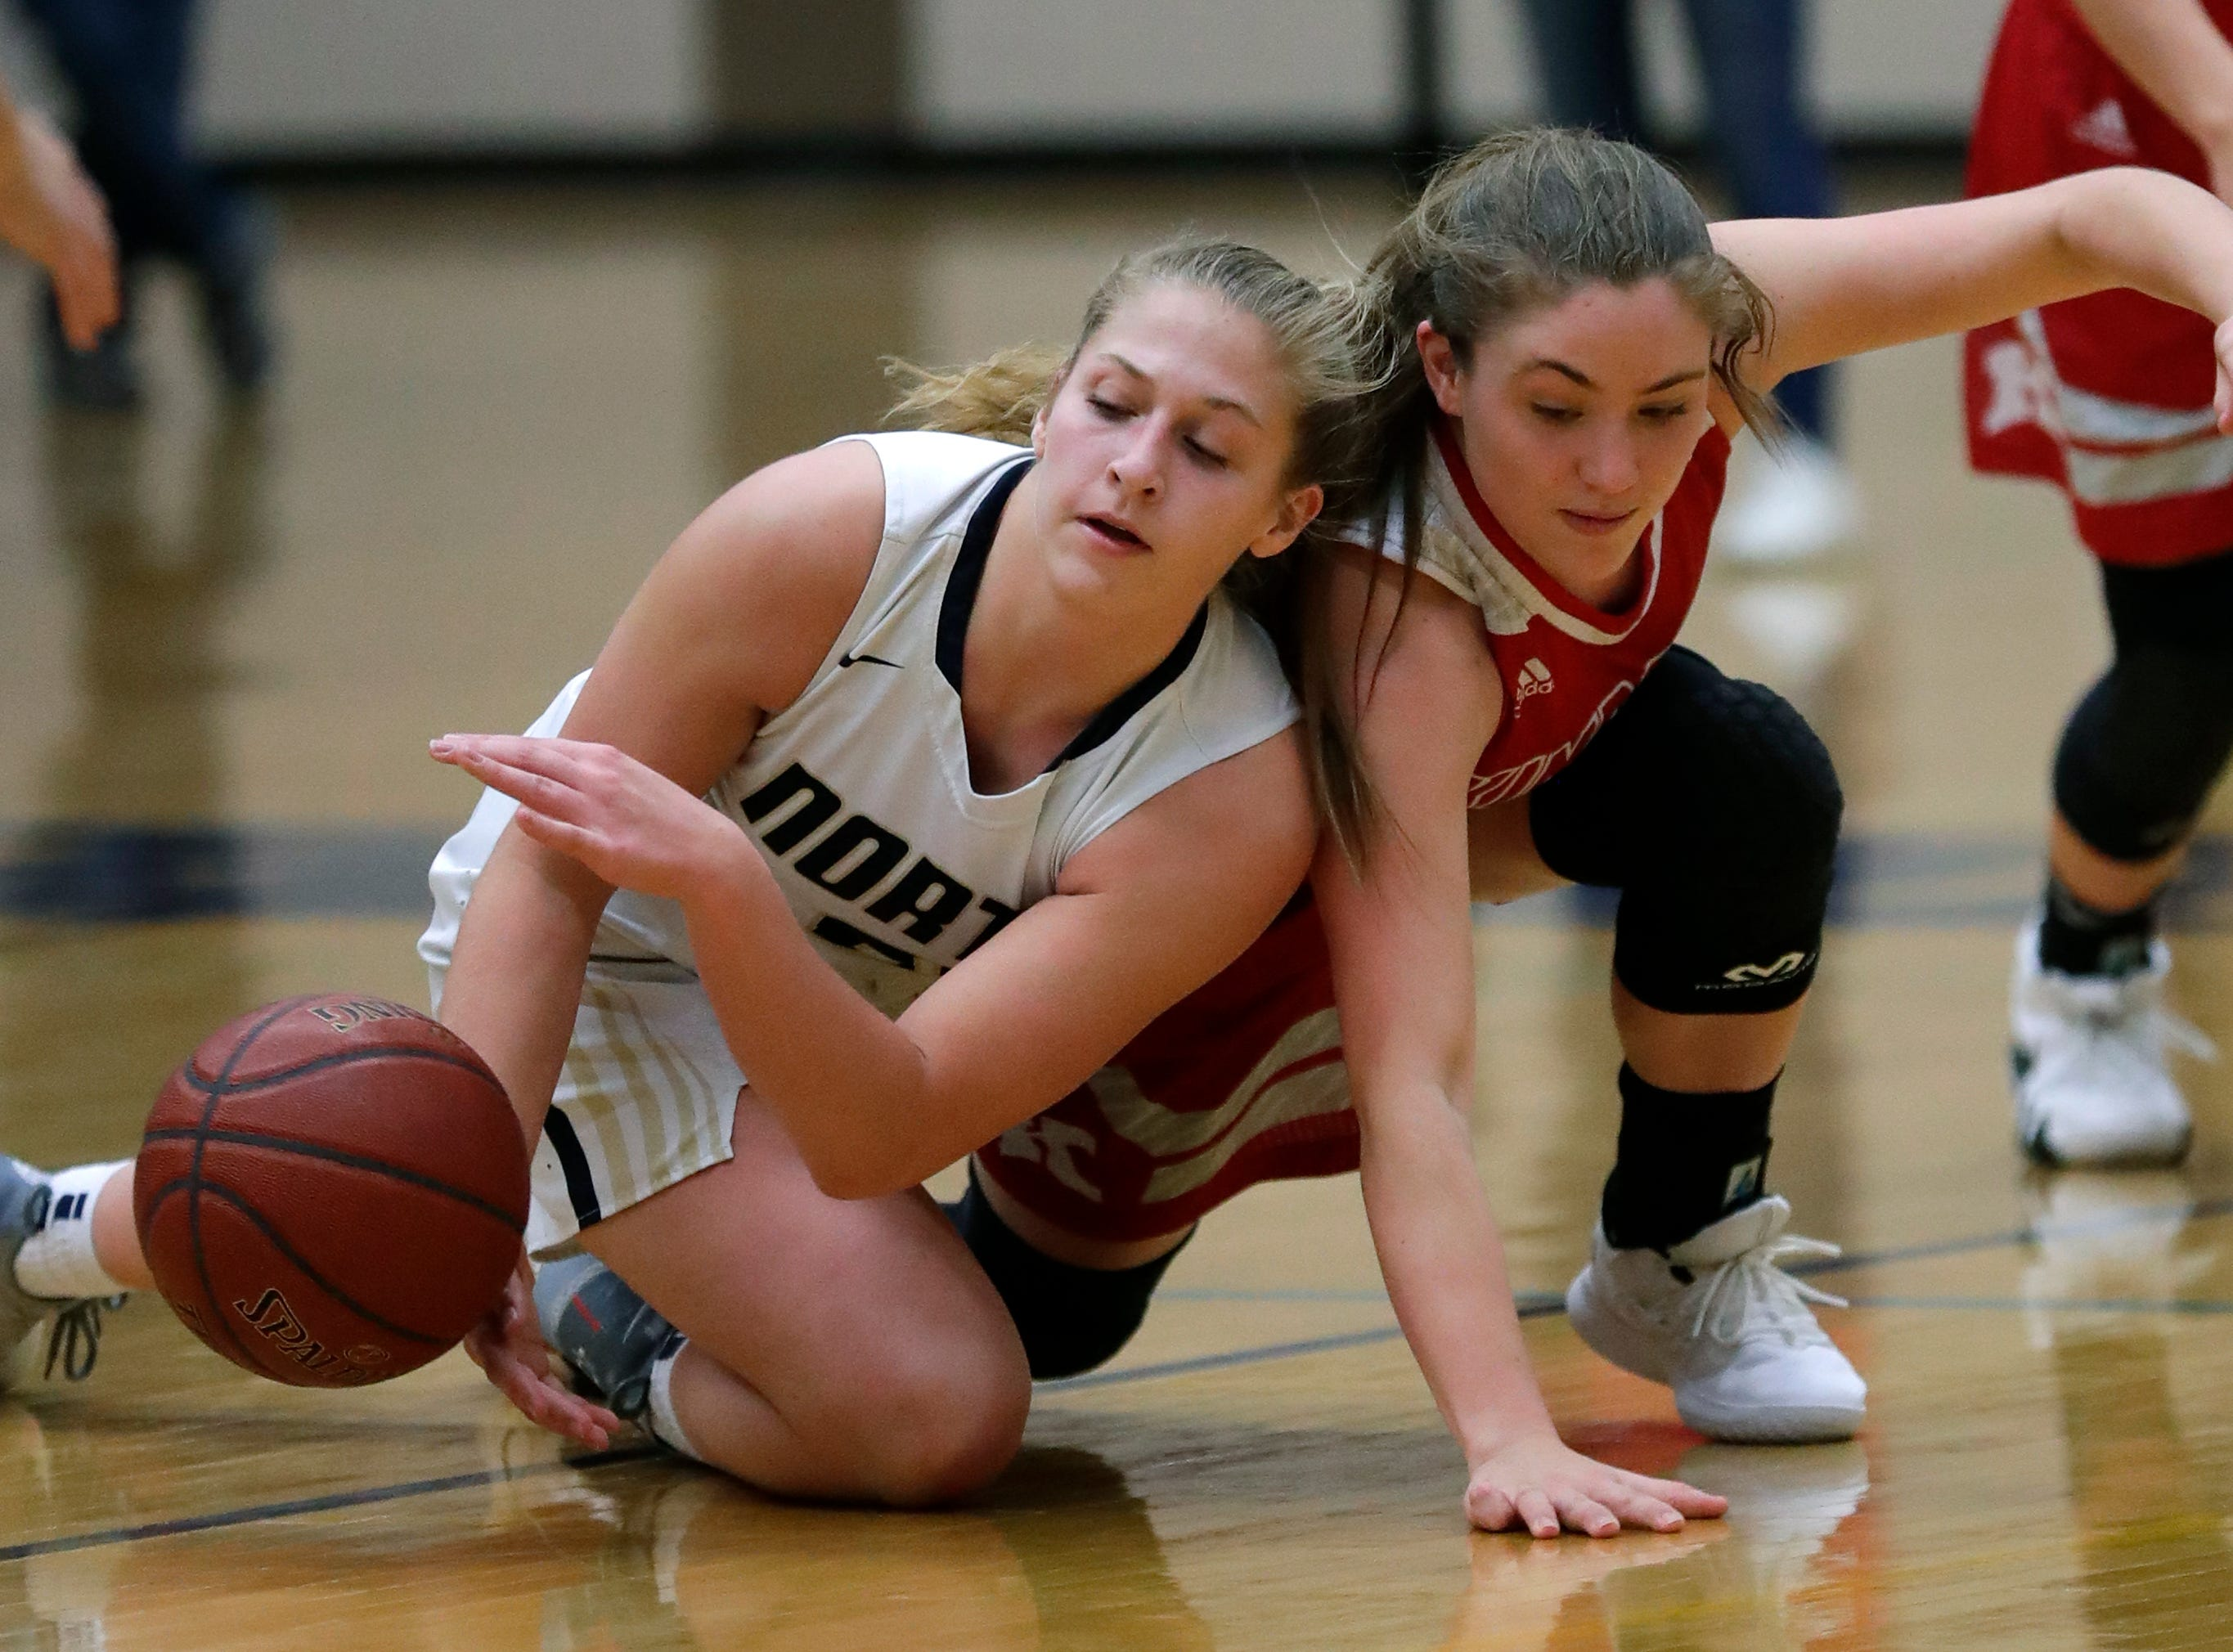 Appleton North High School's Lilli Van Handel (21) scrambles for the ball against Kimberly High School's Kate Karch (21) during their girls basketball game Tuesday, January 8, 2019, in Appleton, Wis. Dan Powers/USA TODAY NETWORK-Wisconsin